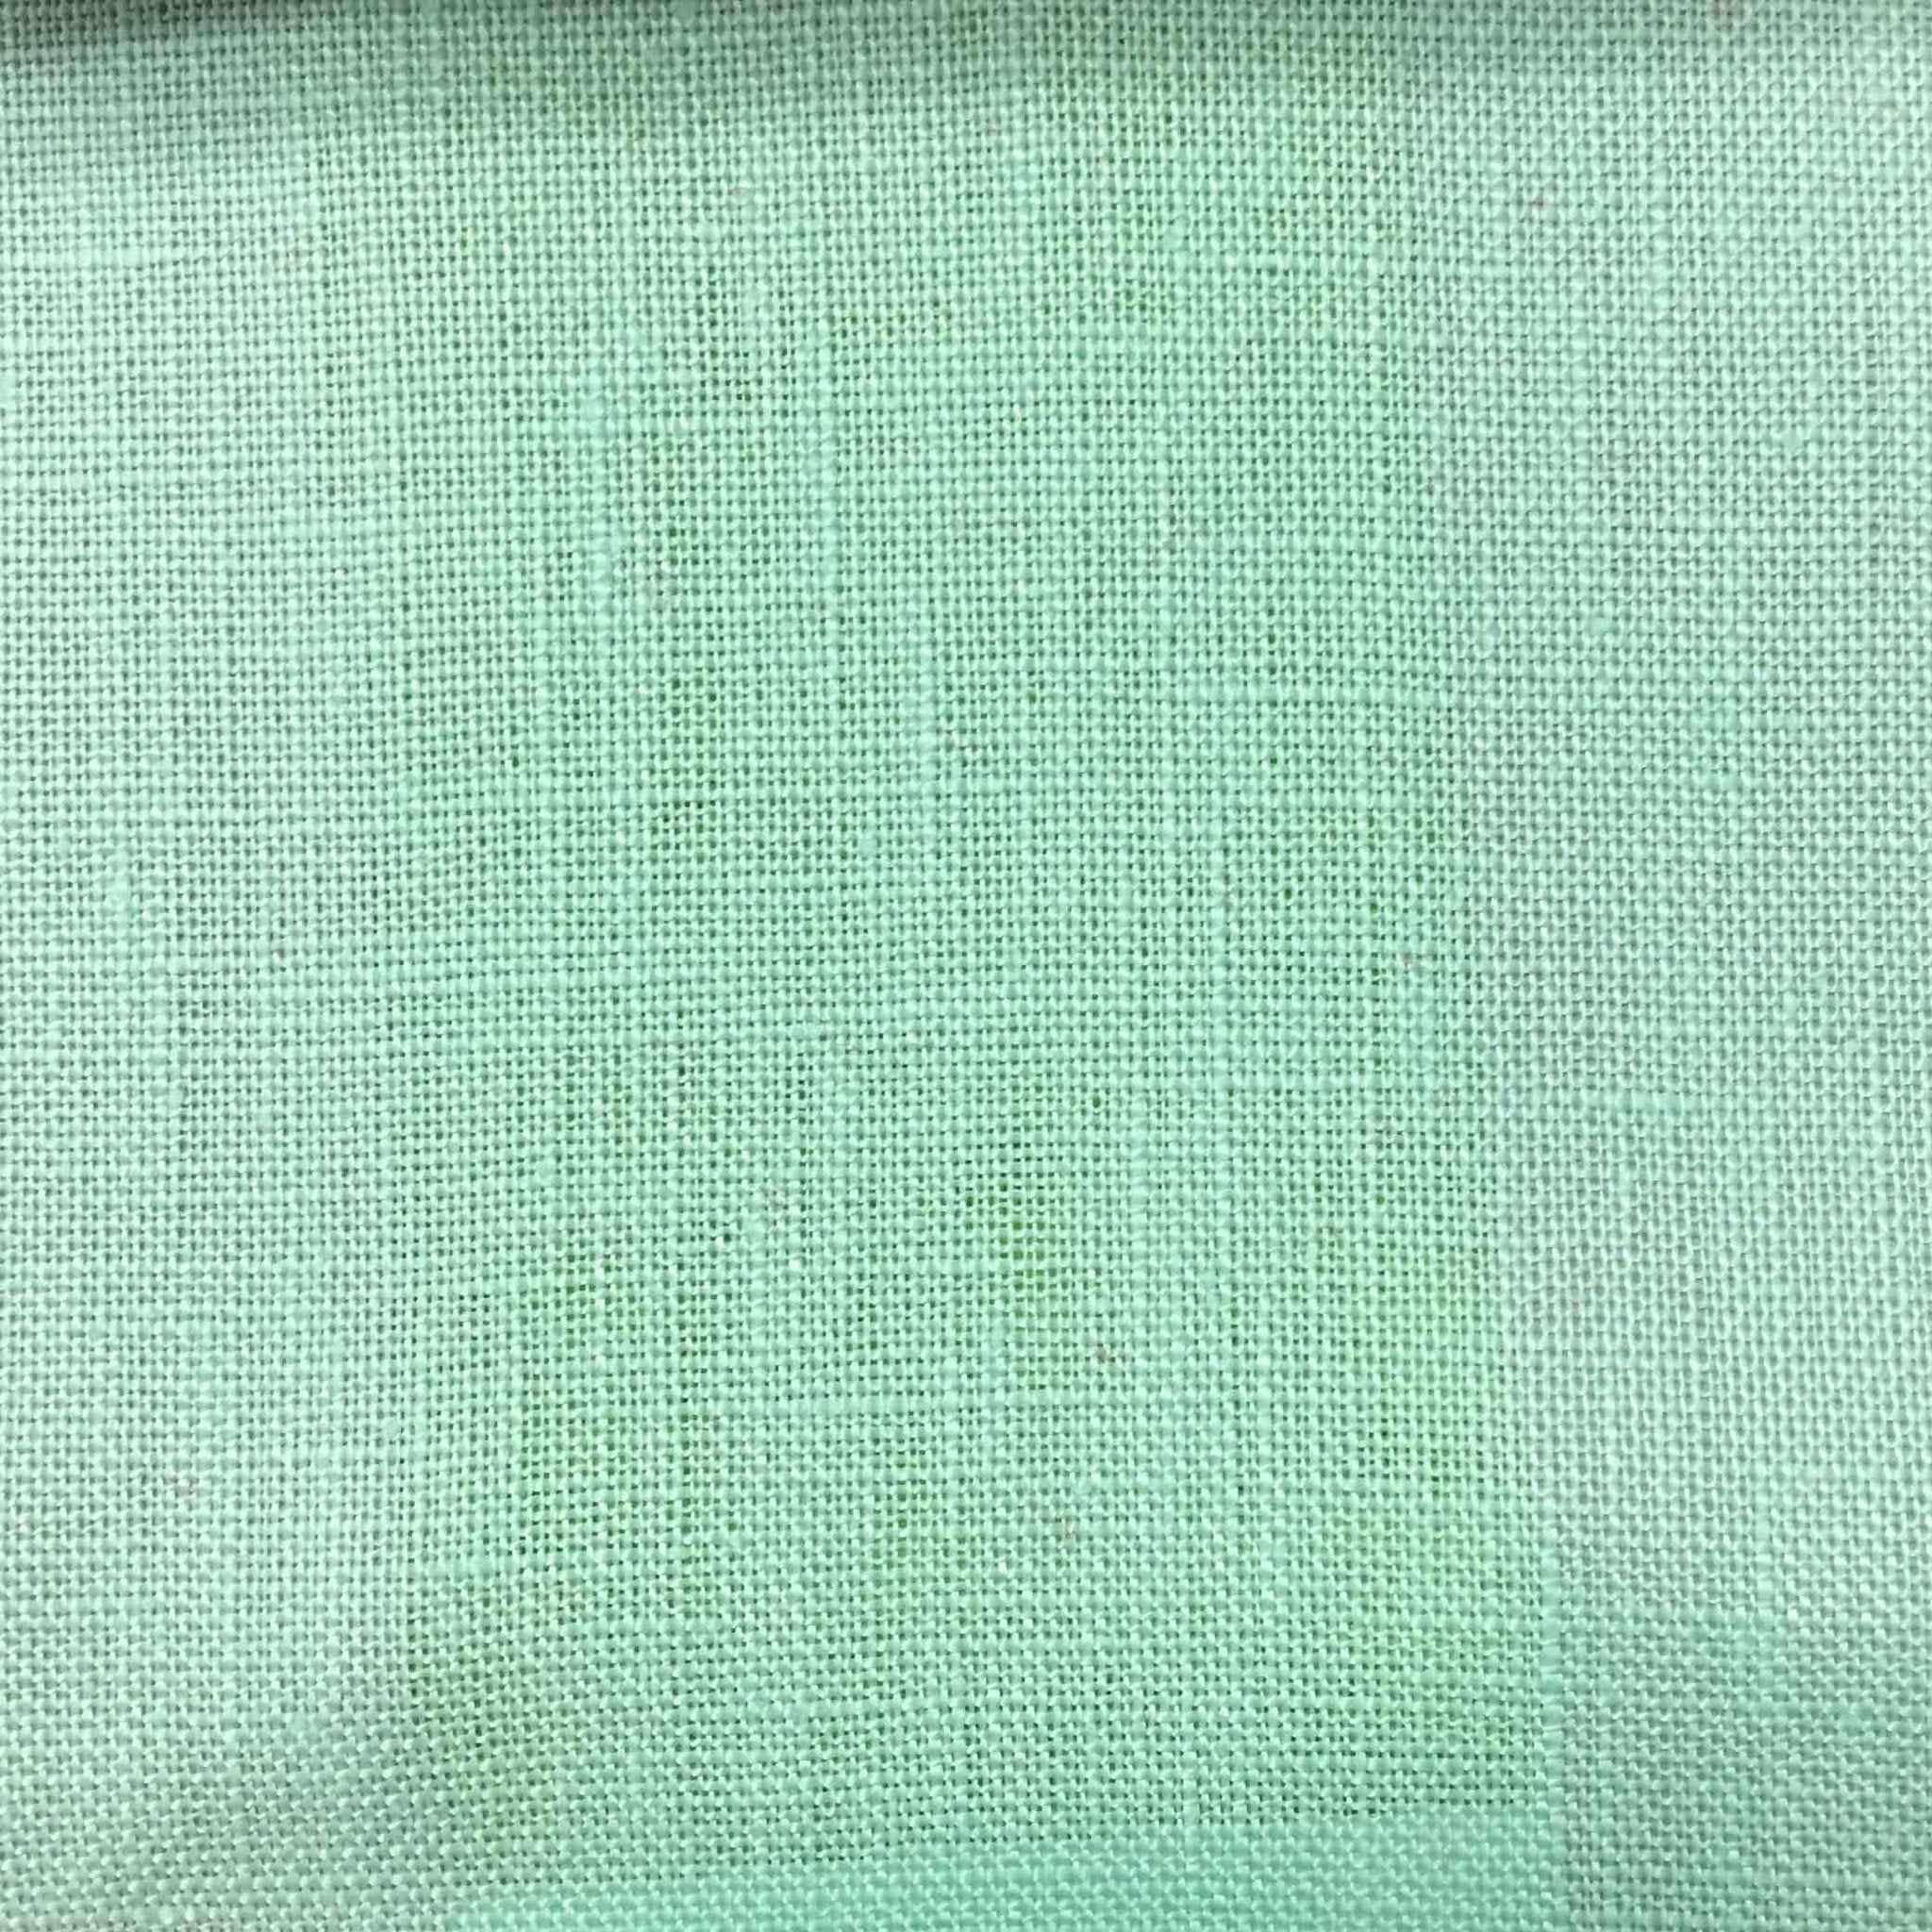 Brighton 100 Linen Fabric Curtain Drapery Fabric by the Yard